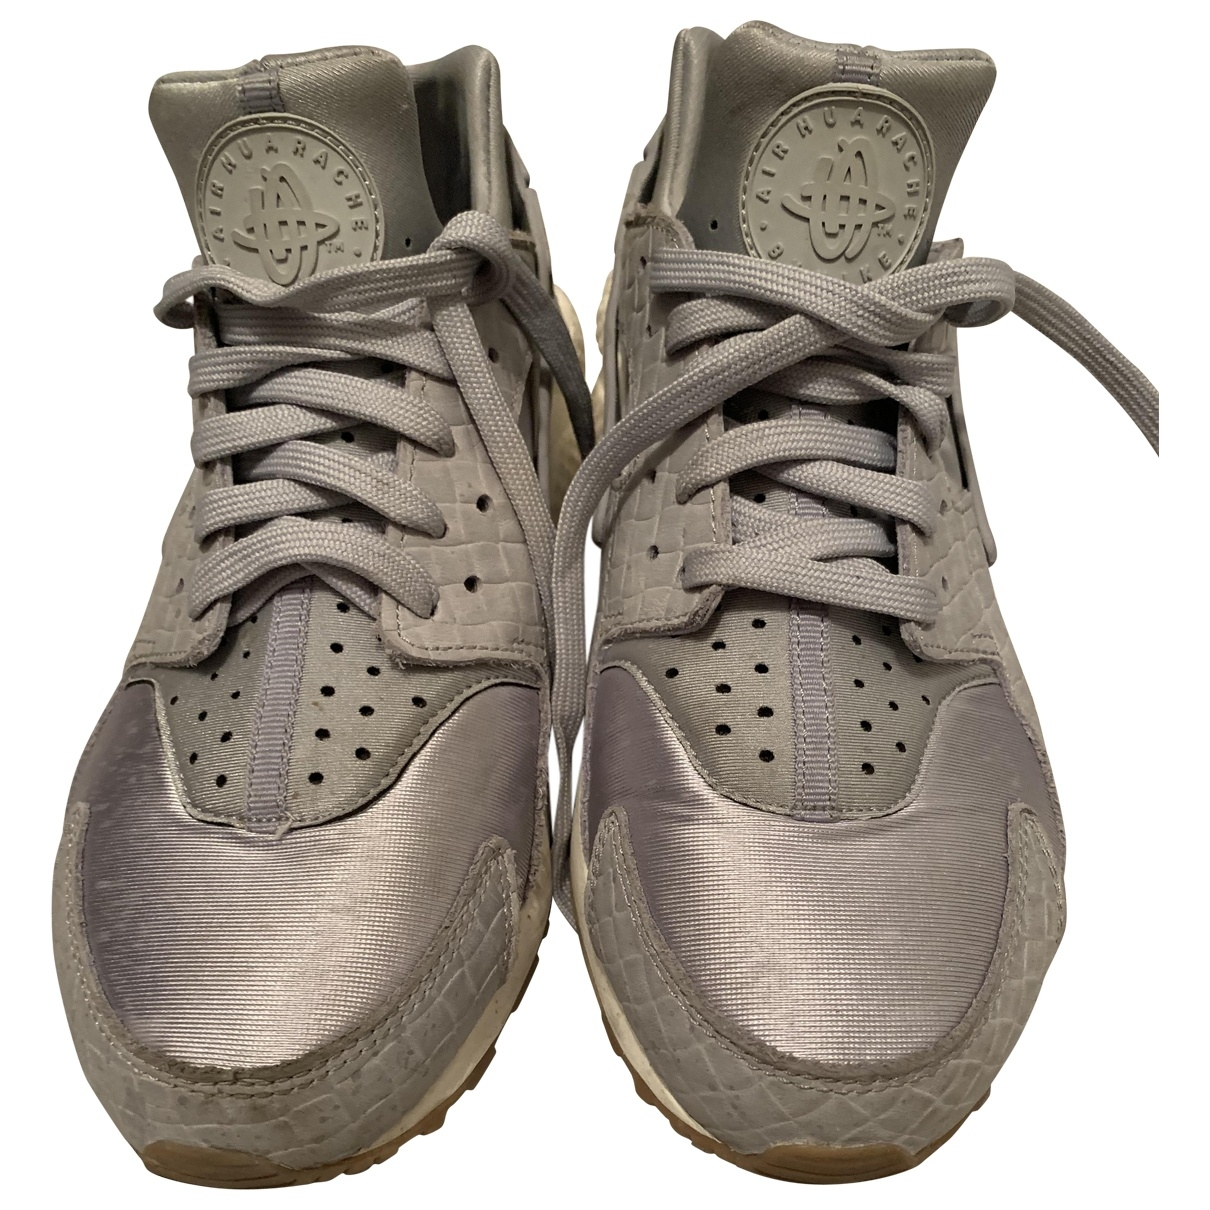 Nike Huarache Silver Cloth Trainers for Women 7.5 UK